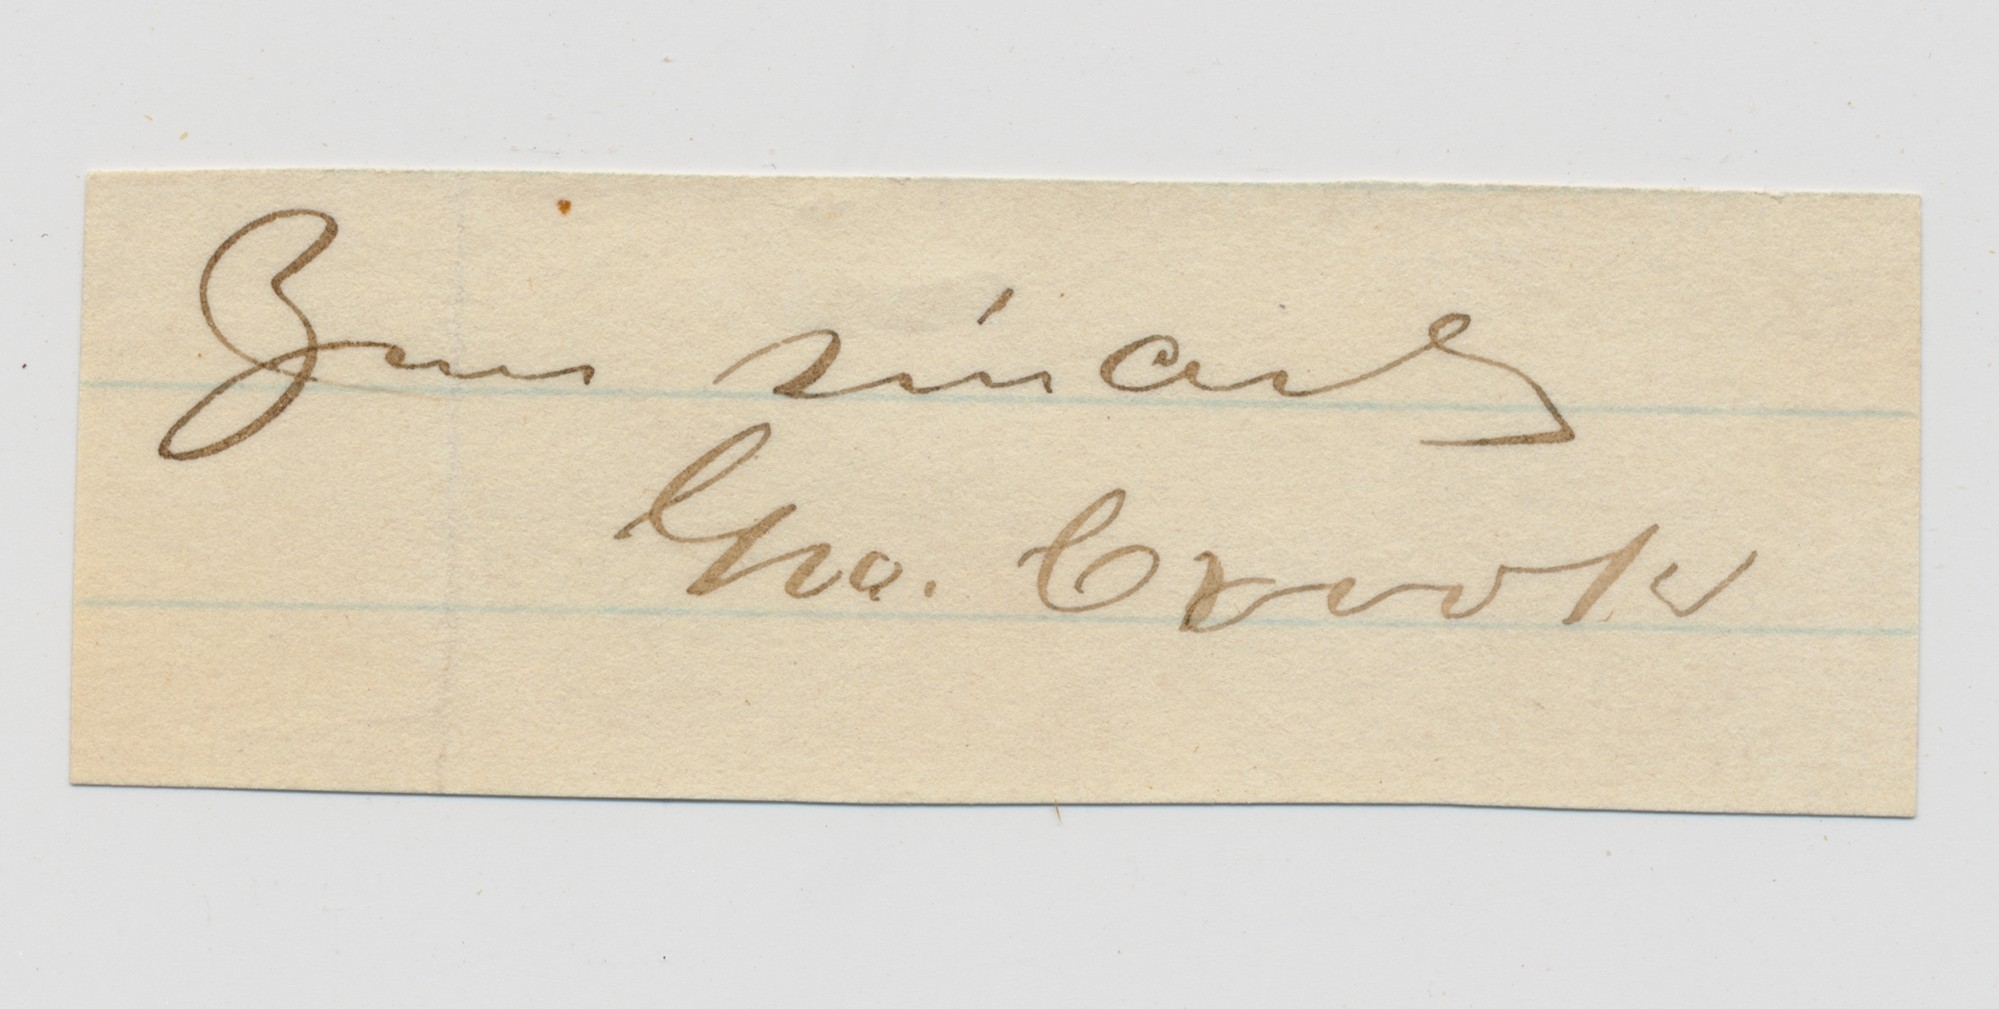 CLIPPED SIGNATURE OF UNION GENERAL GEORGE CROOK